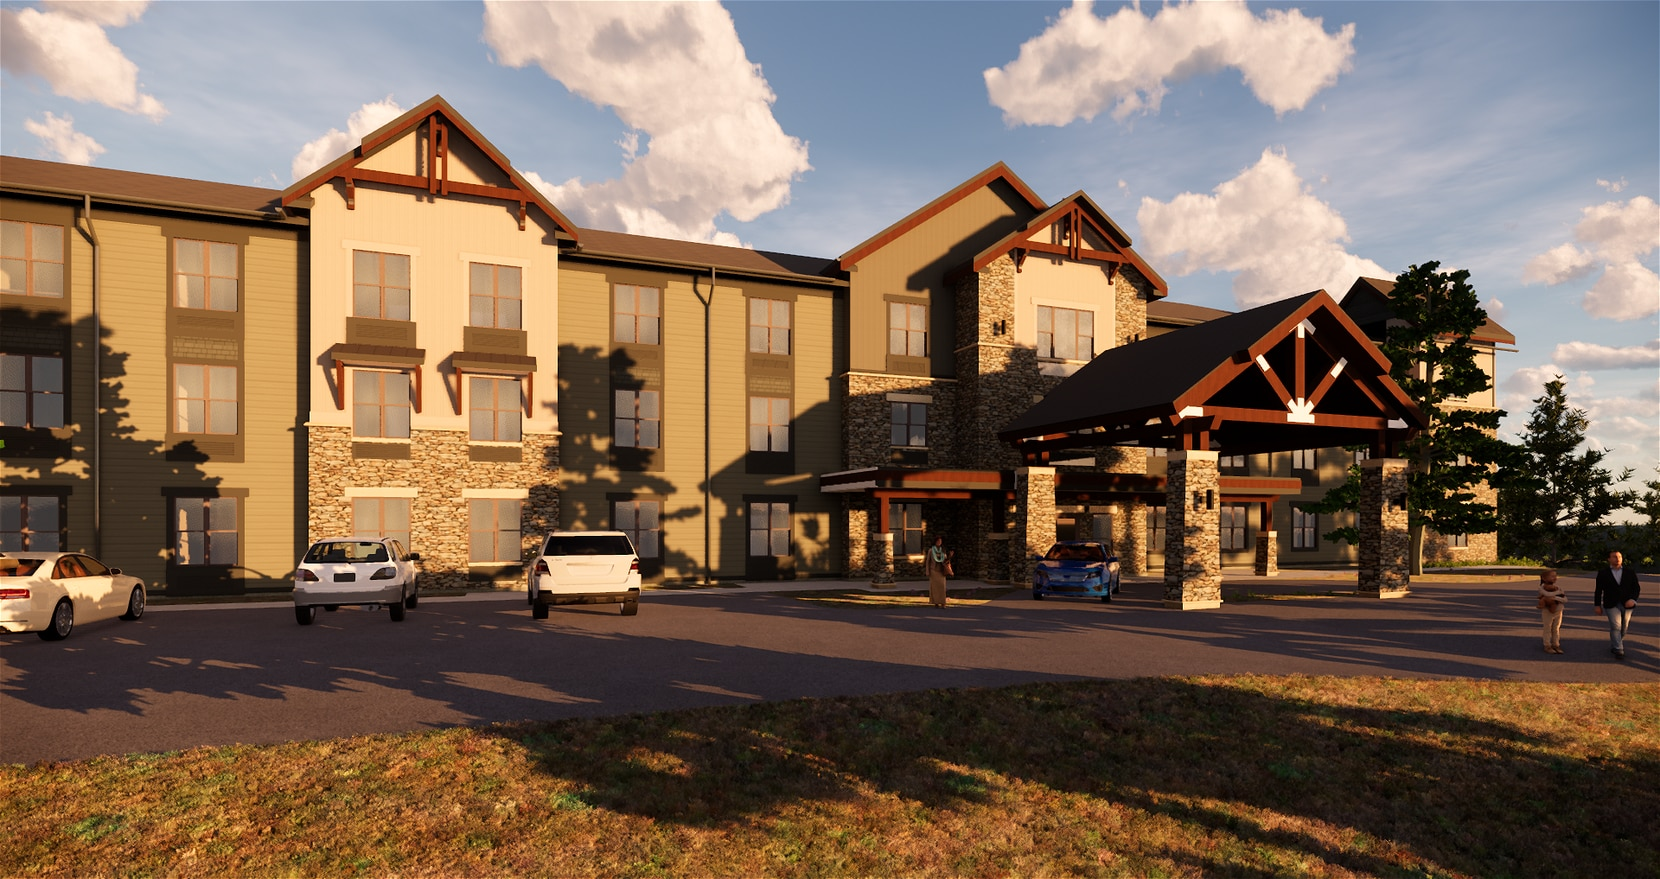 A rendering of the Flagstaff community to be developed by Civitas Senior Living and an Arizona developer.